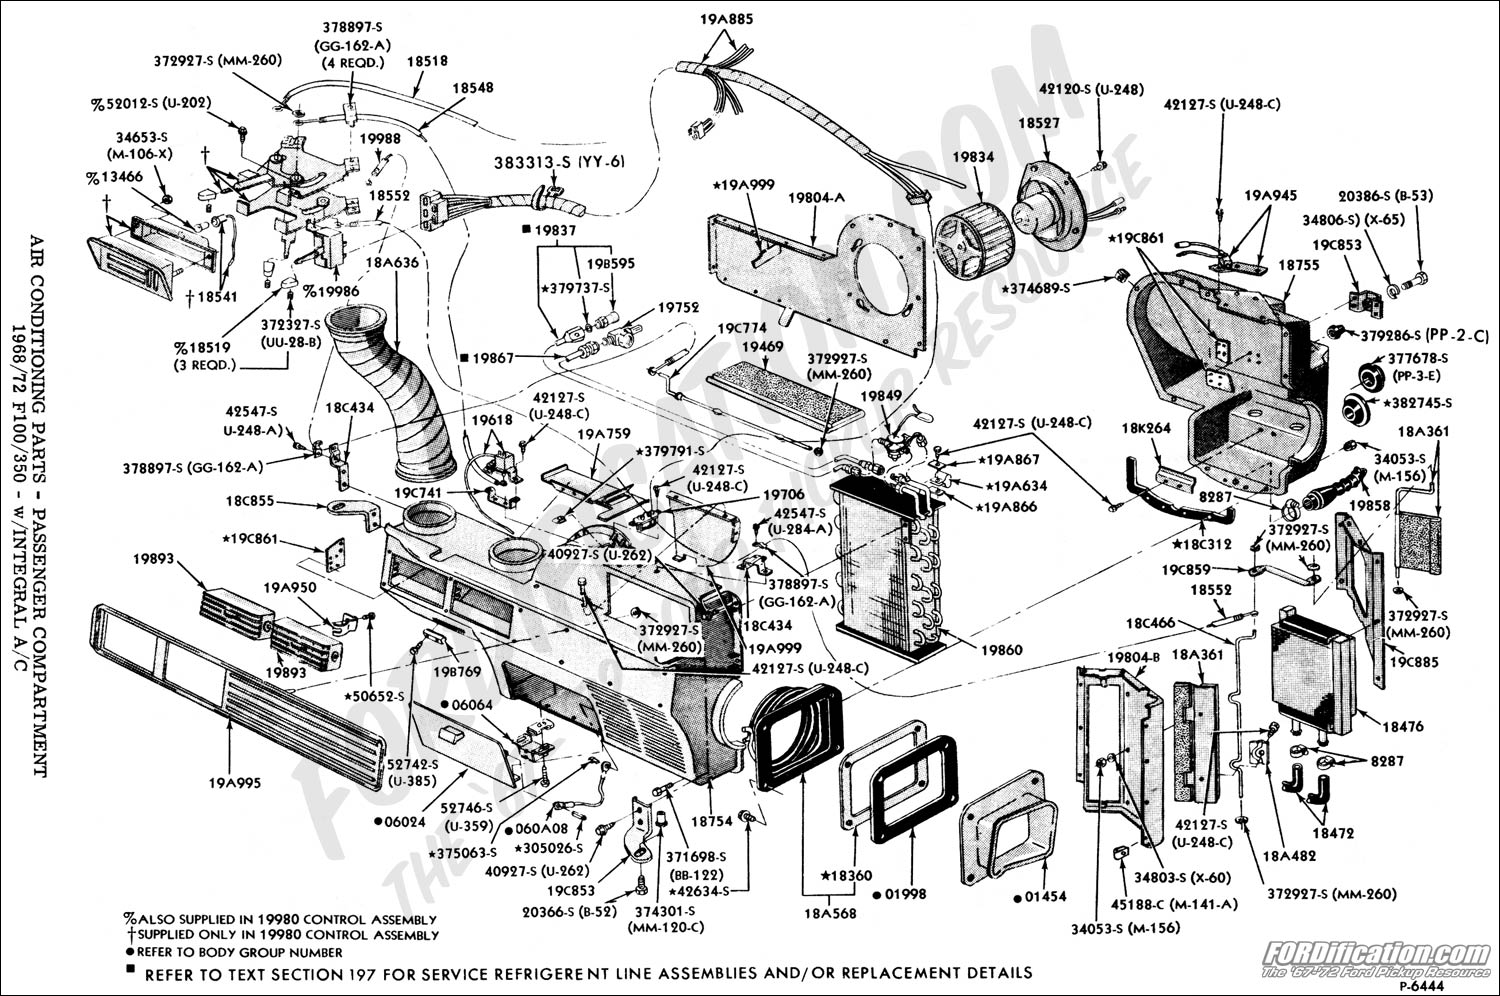 01 chevy wiring schematic 57 chevy wiring schematic